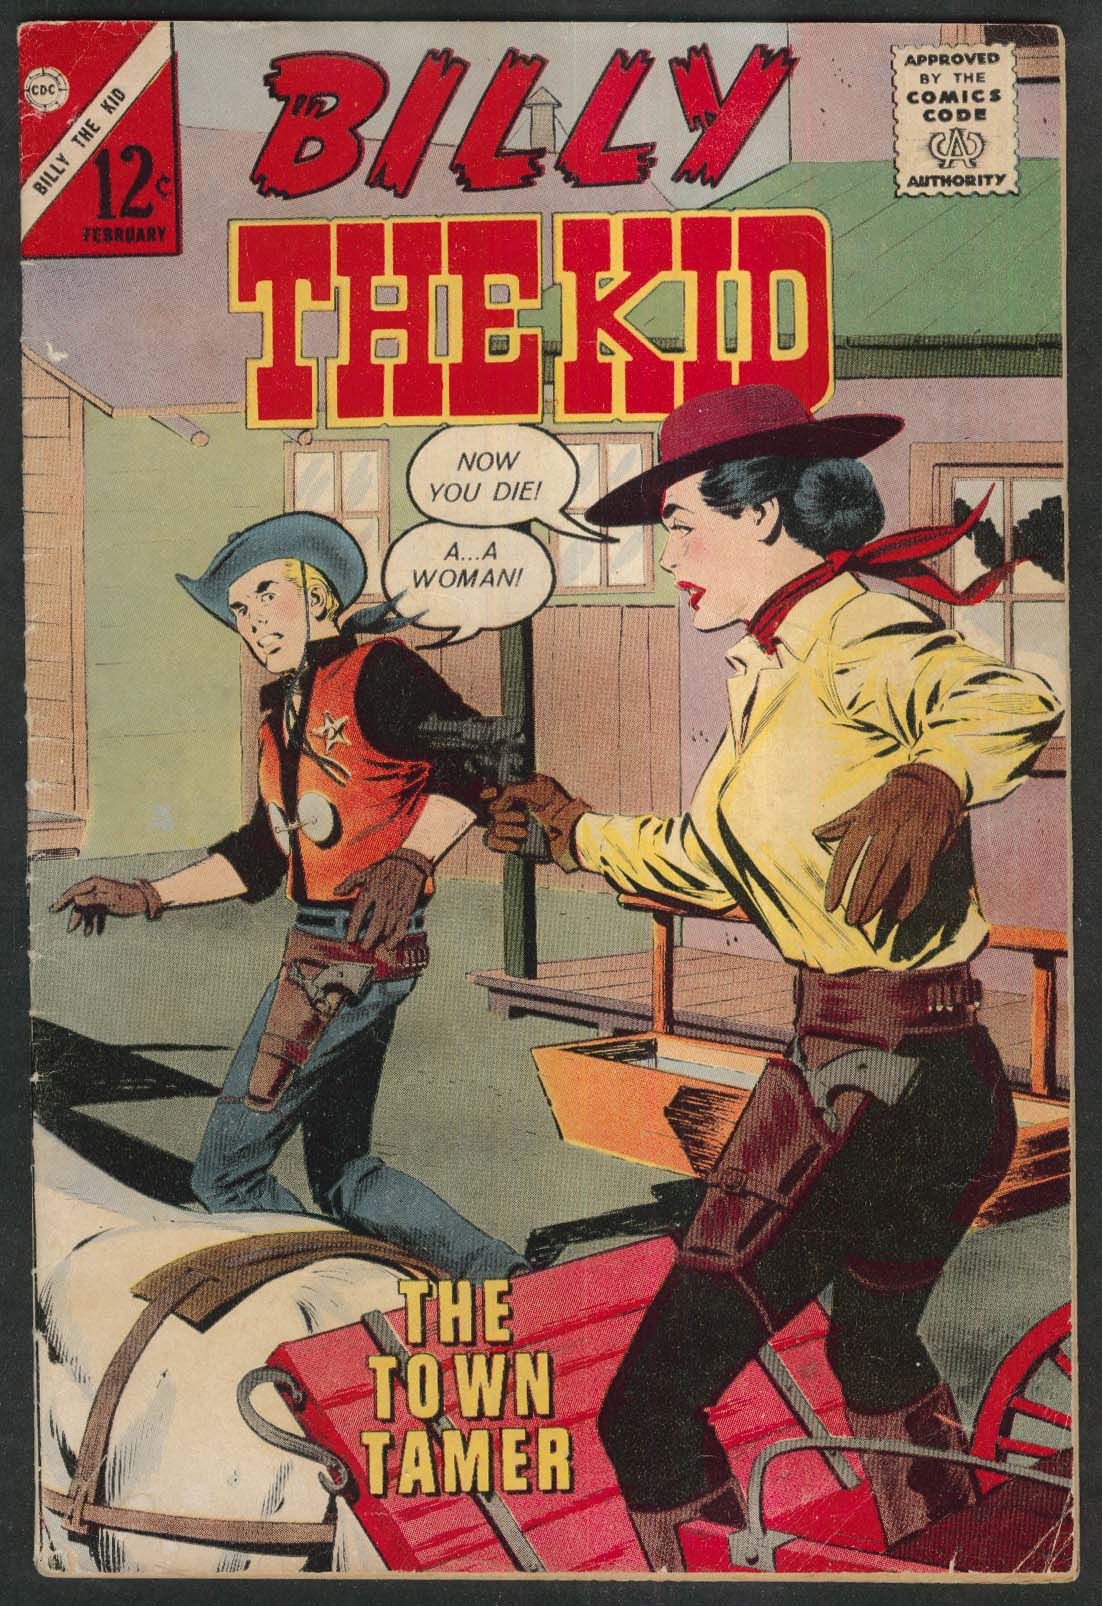 BILLY the KID #38 Charlton comic book 2 1963